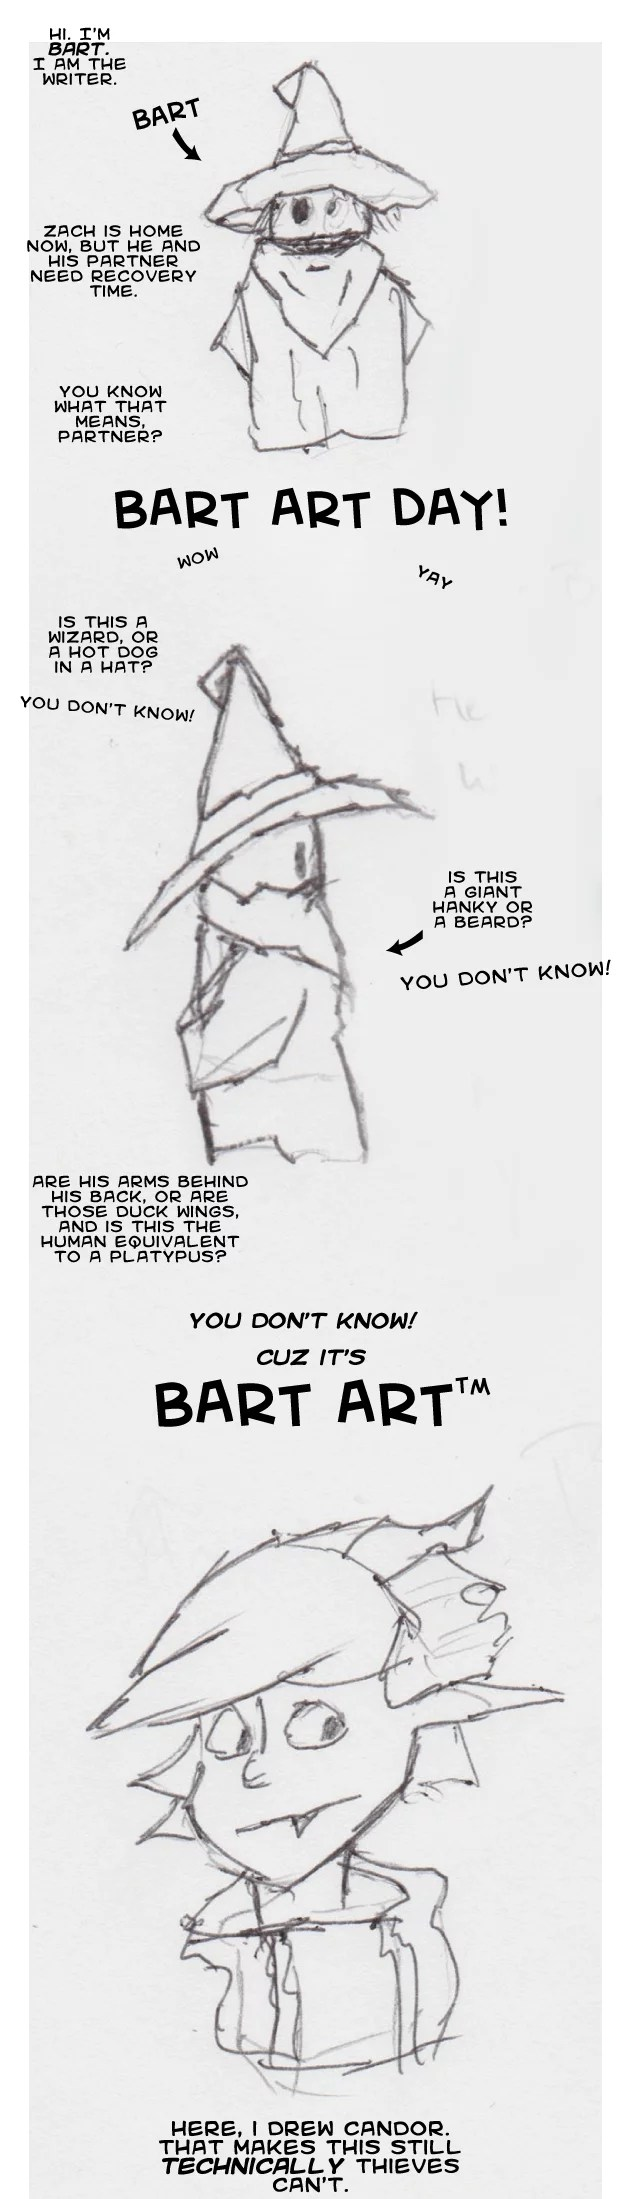 The real bart art was the friends we earned along the way?